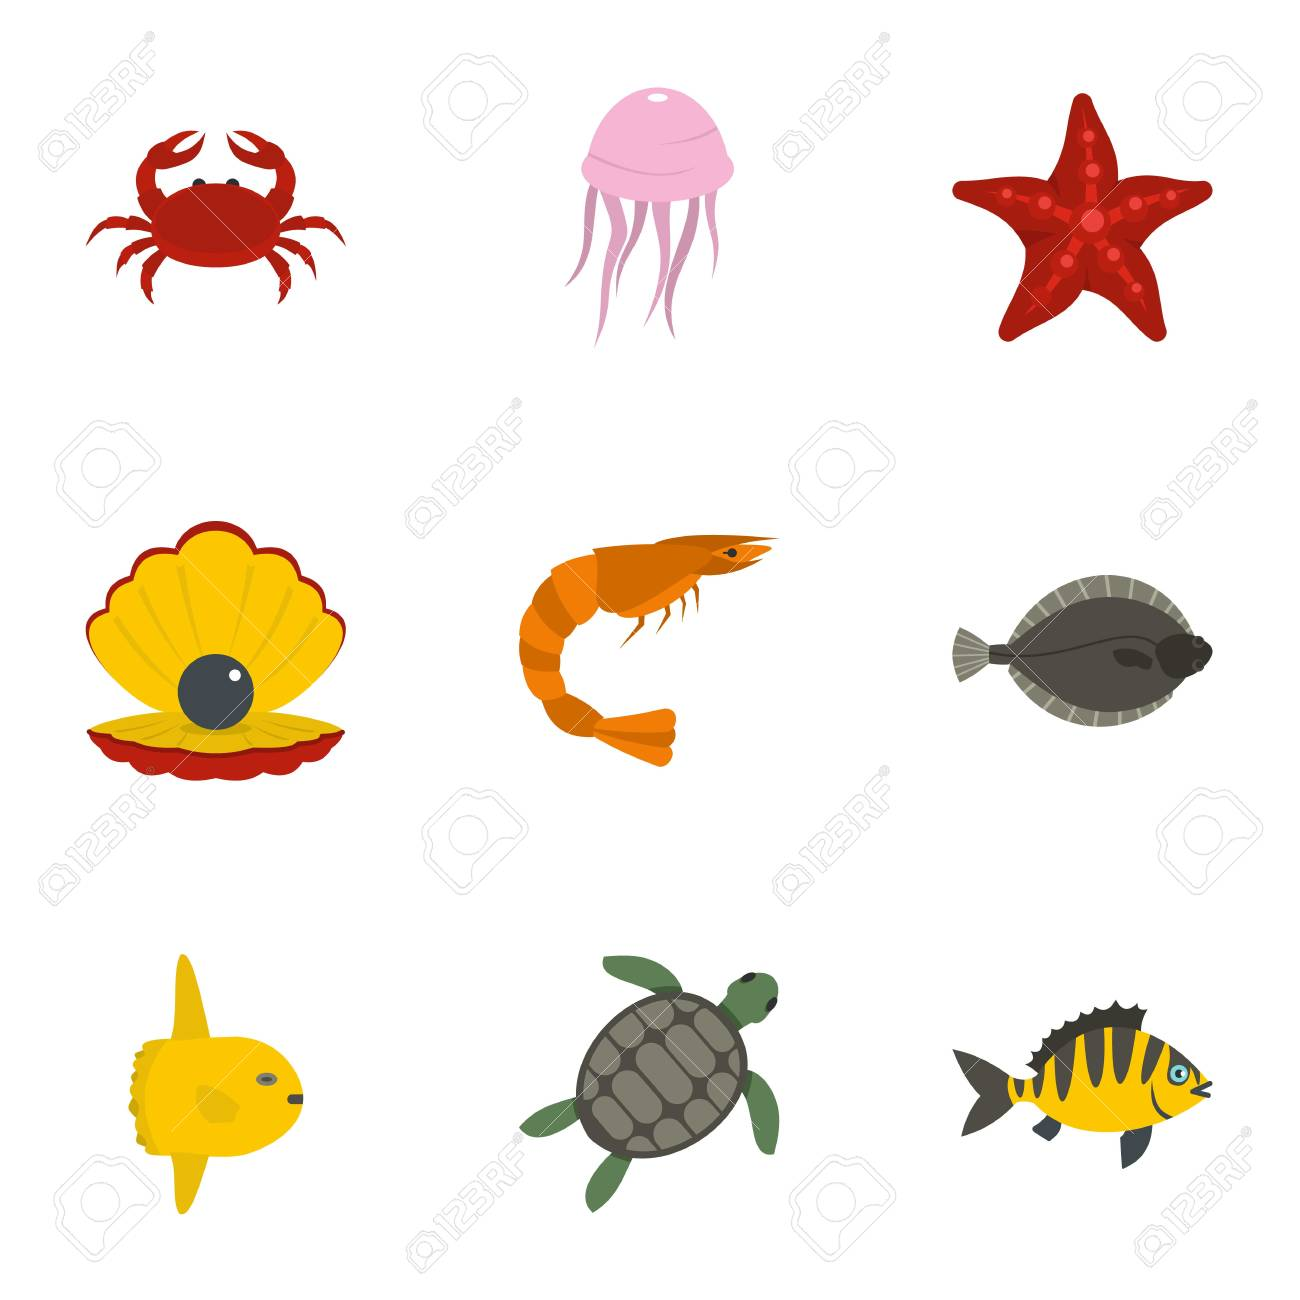 Banque dimages underwater animal stickers icons set flat style